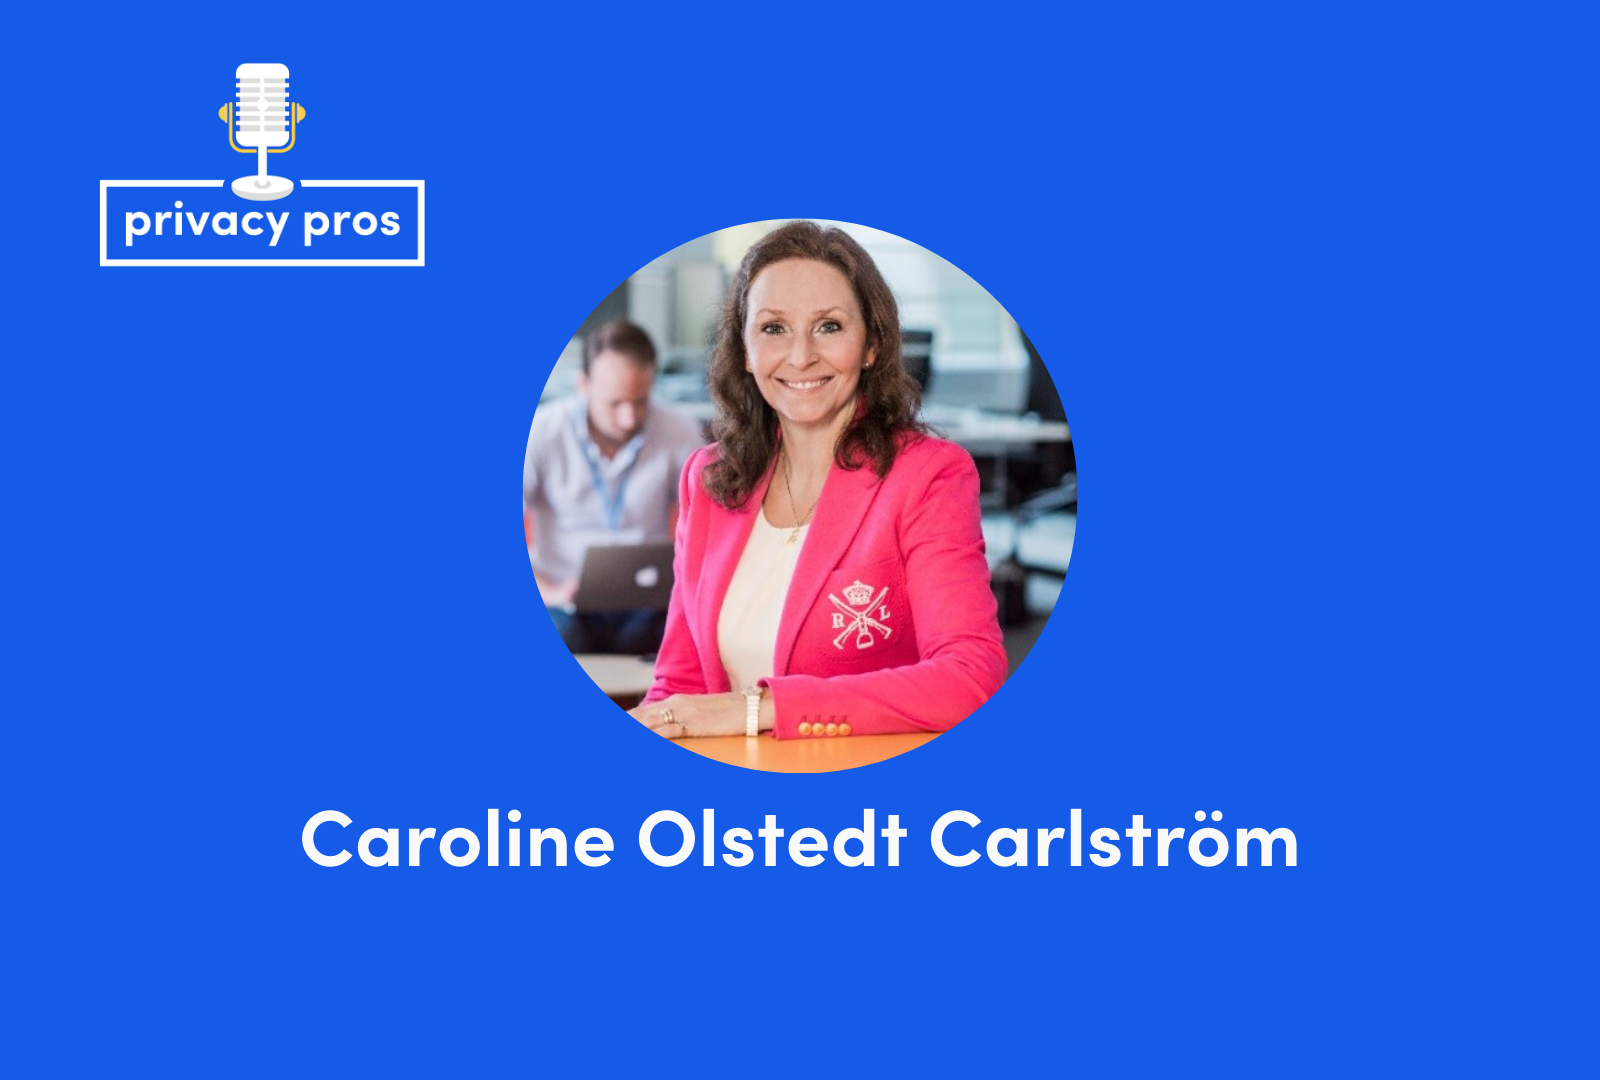 Interview with Caroline Olstedt Carlström, ex-VP of Privacy at Klarna and co-founder of the Swedish Data Protection Forum